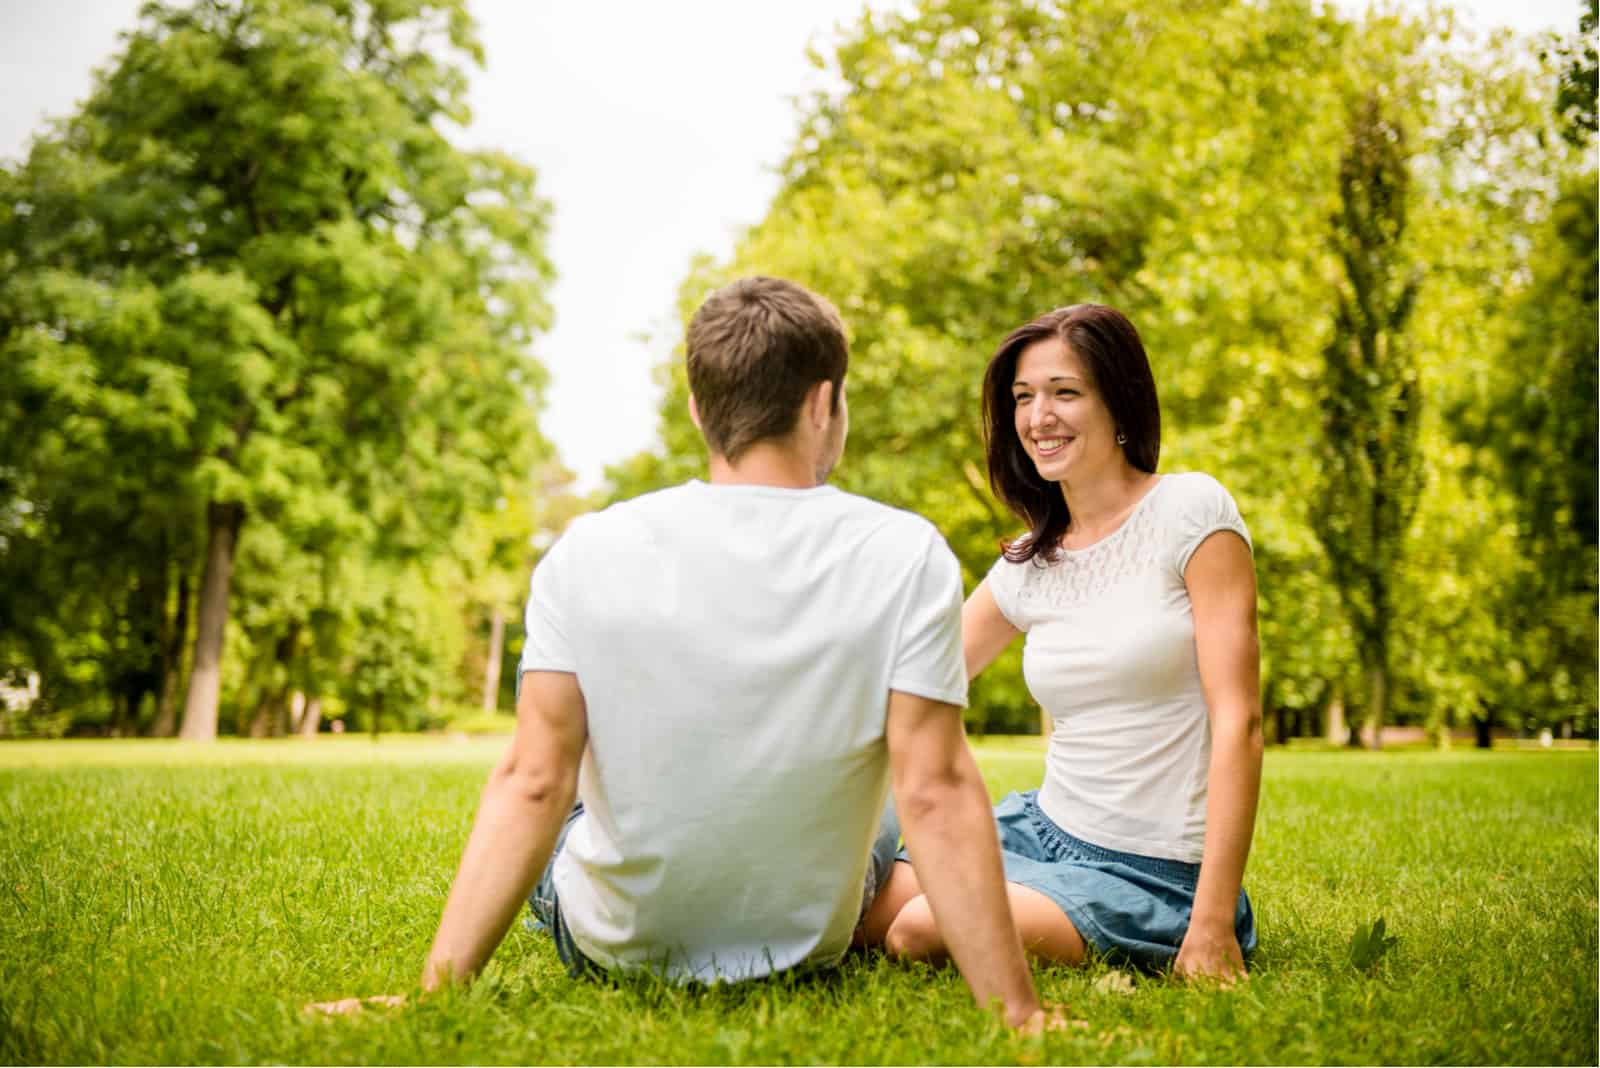 a smiling woman talking to a man while sitting on the grass in the park